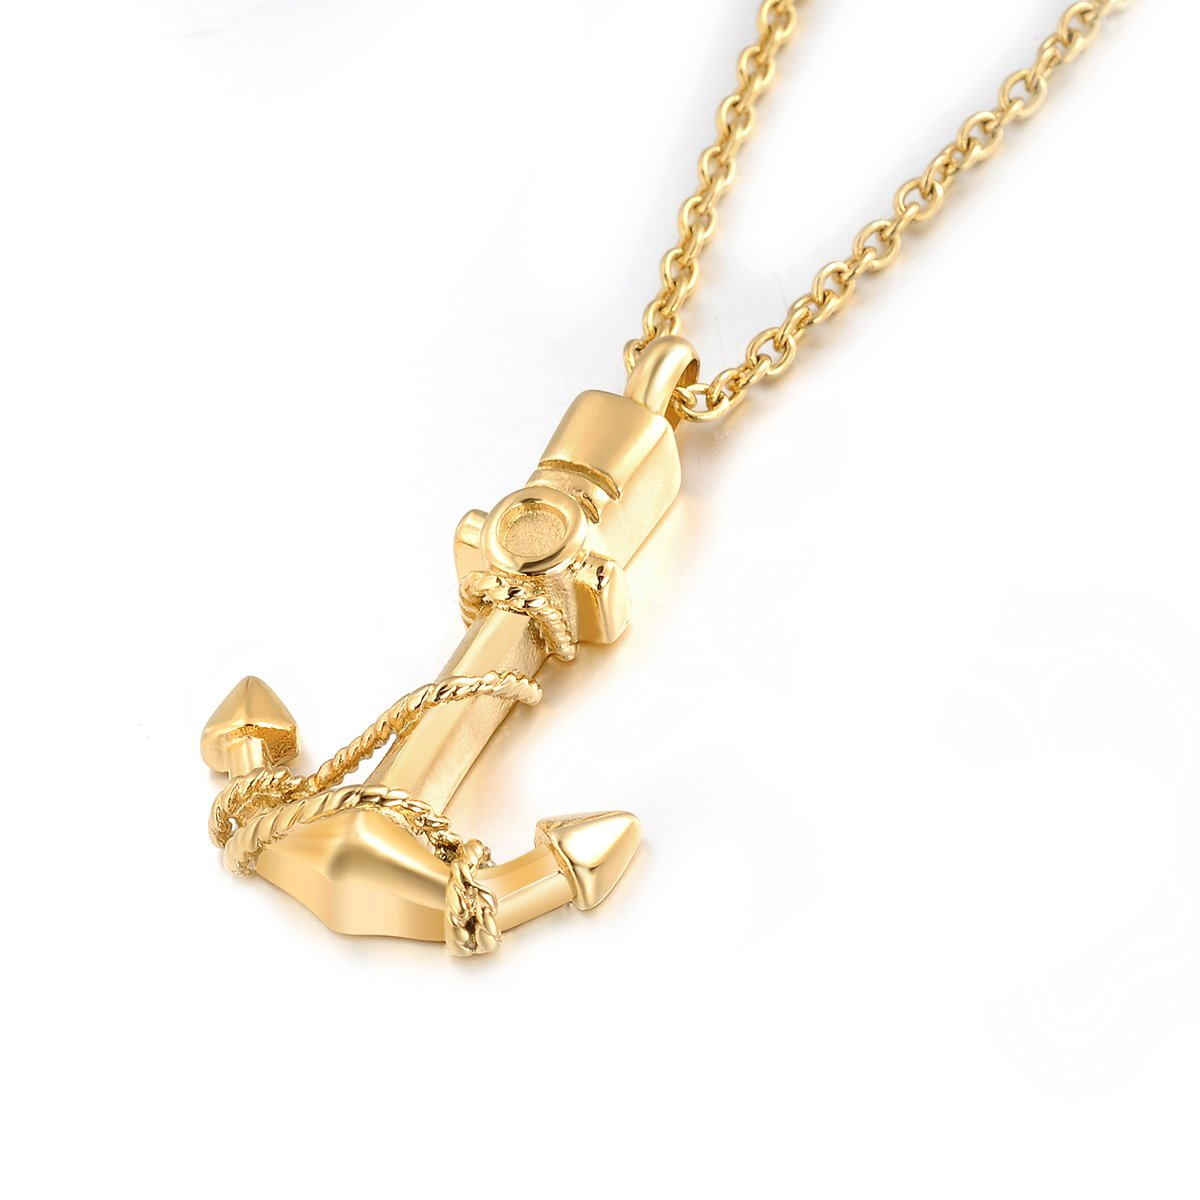 Cremation Urn Jewelry Anchor Necklace Ashes Keepsake Memorial Stainless Steel Pendant MCKN MCKN-A02